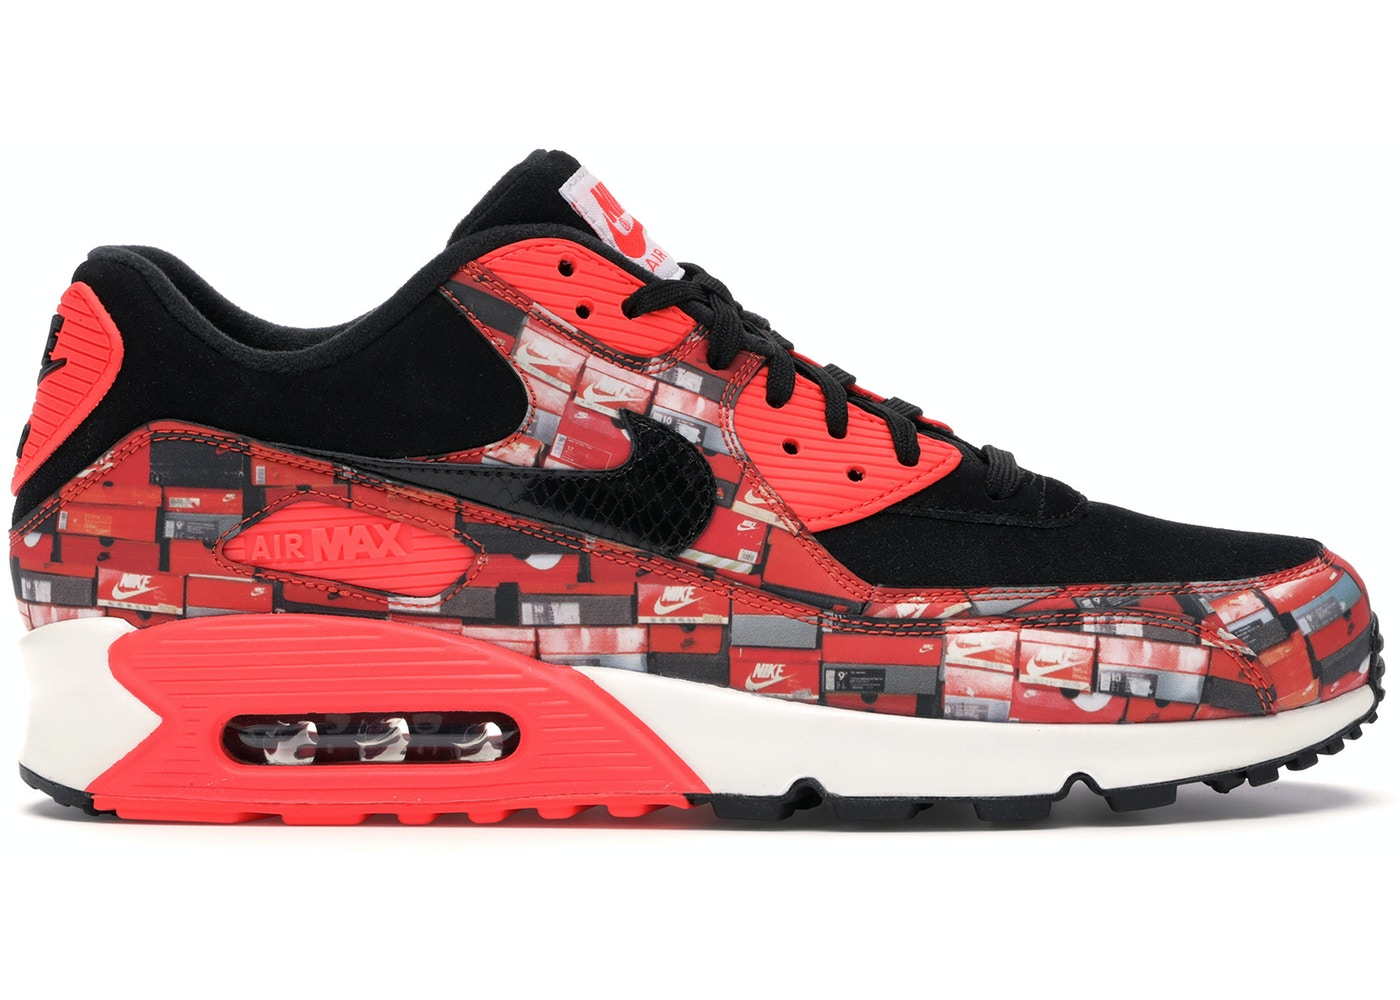 quality design 0f651 41be6 Air Max 90 Atmos We Love Nike (Bright Crimson) - AQ0926-001